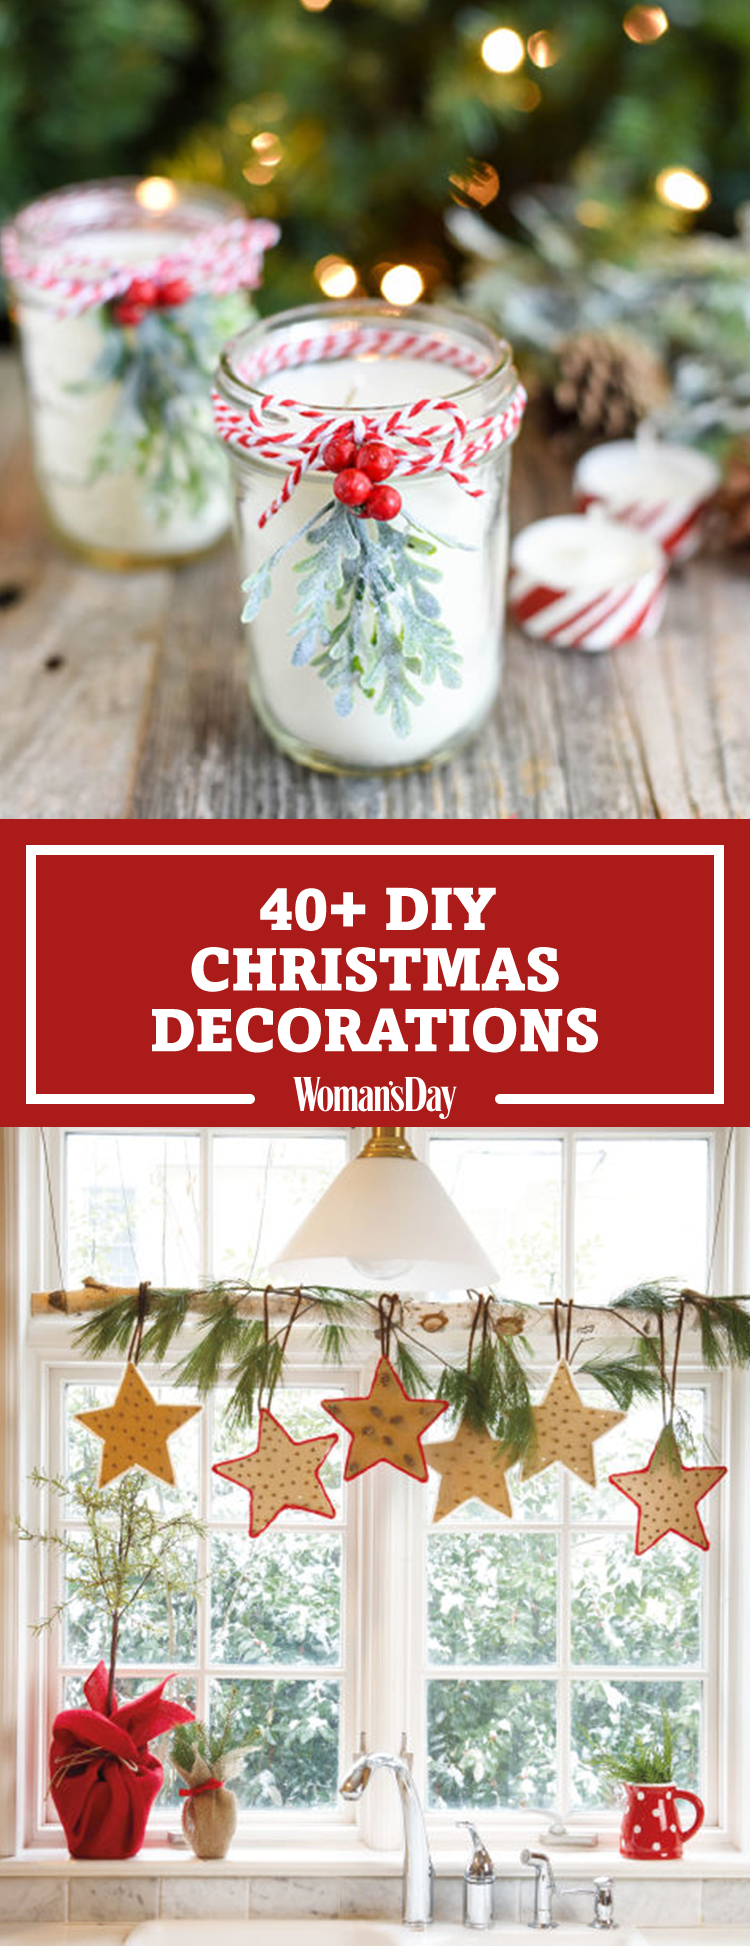 47 Easy Diy Christmas Decorations Homemade Ideas For Holiday Decorating